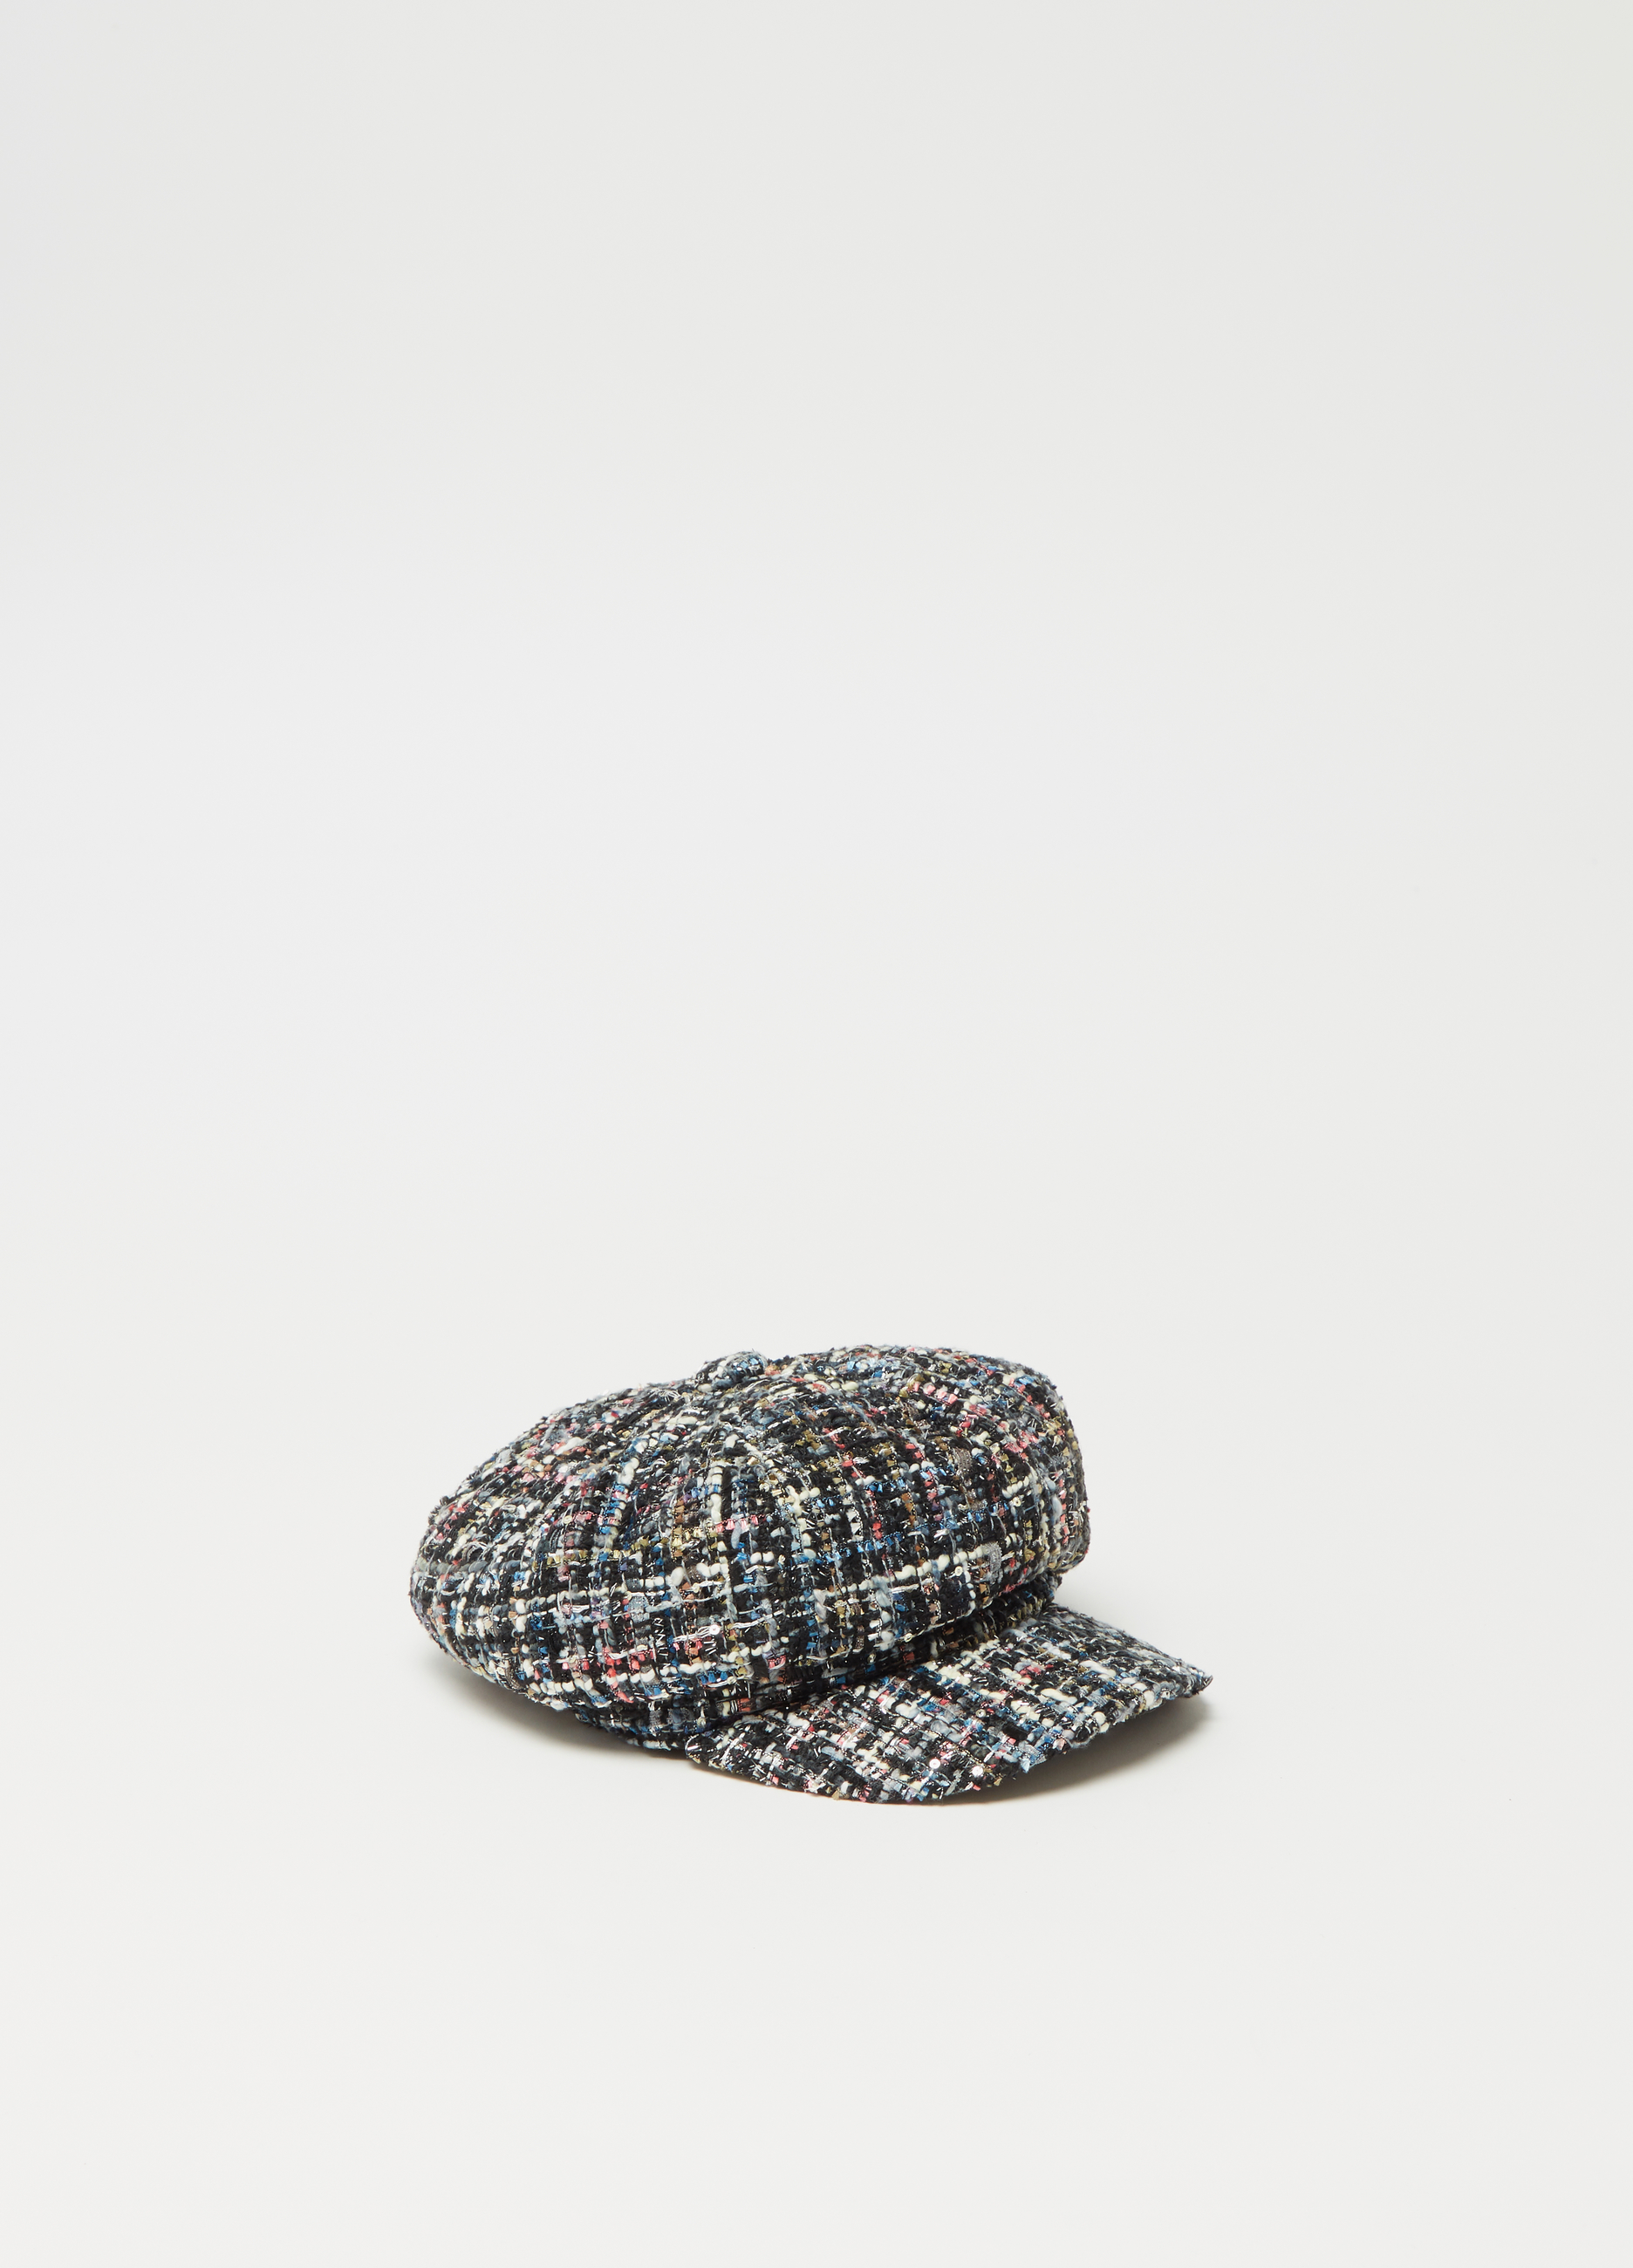 Multicoloured tweed baker boy hat with pattern  103374c368d